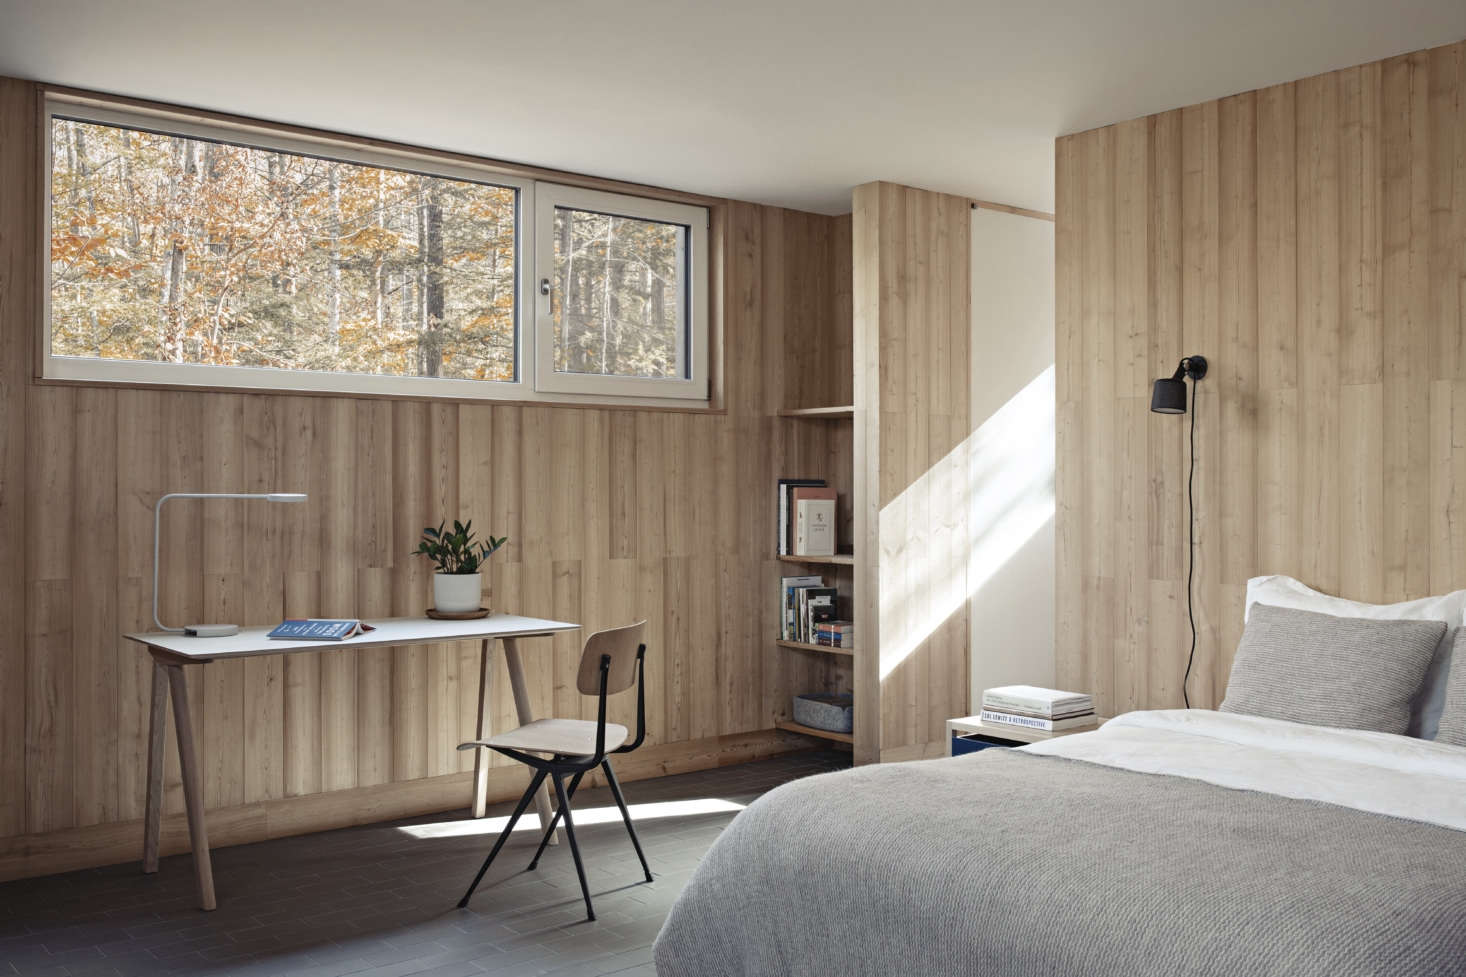 Paneled in larch, the bedrooms have a modernist cabin feel. The desk is the Copenhague 90 by Hay and the bedside sconces are Wall Spots by Vipp.